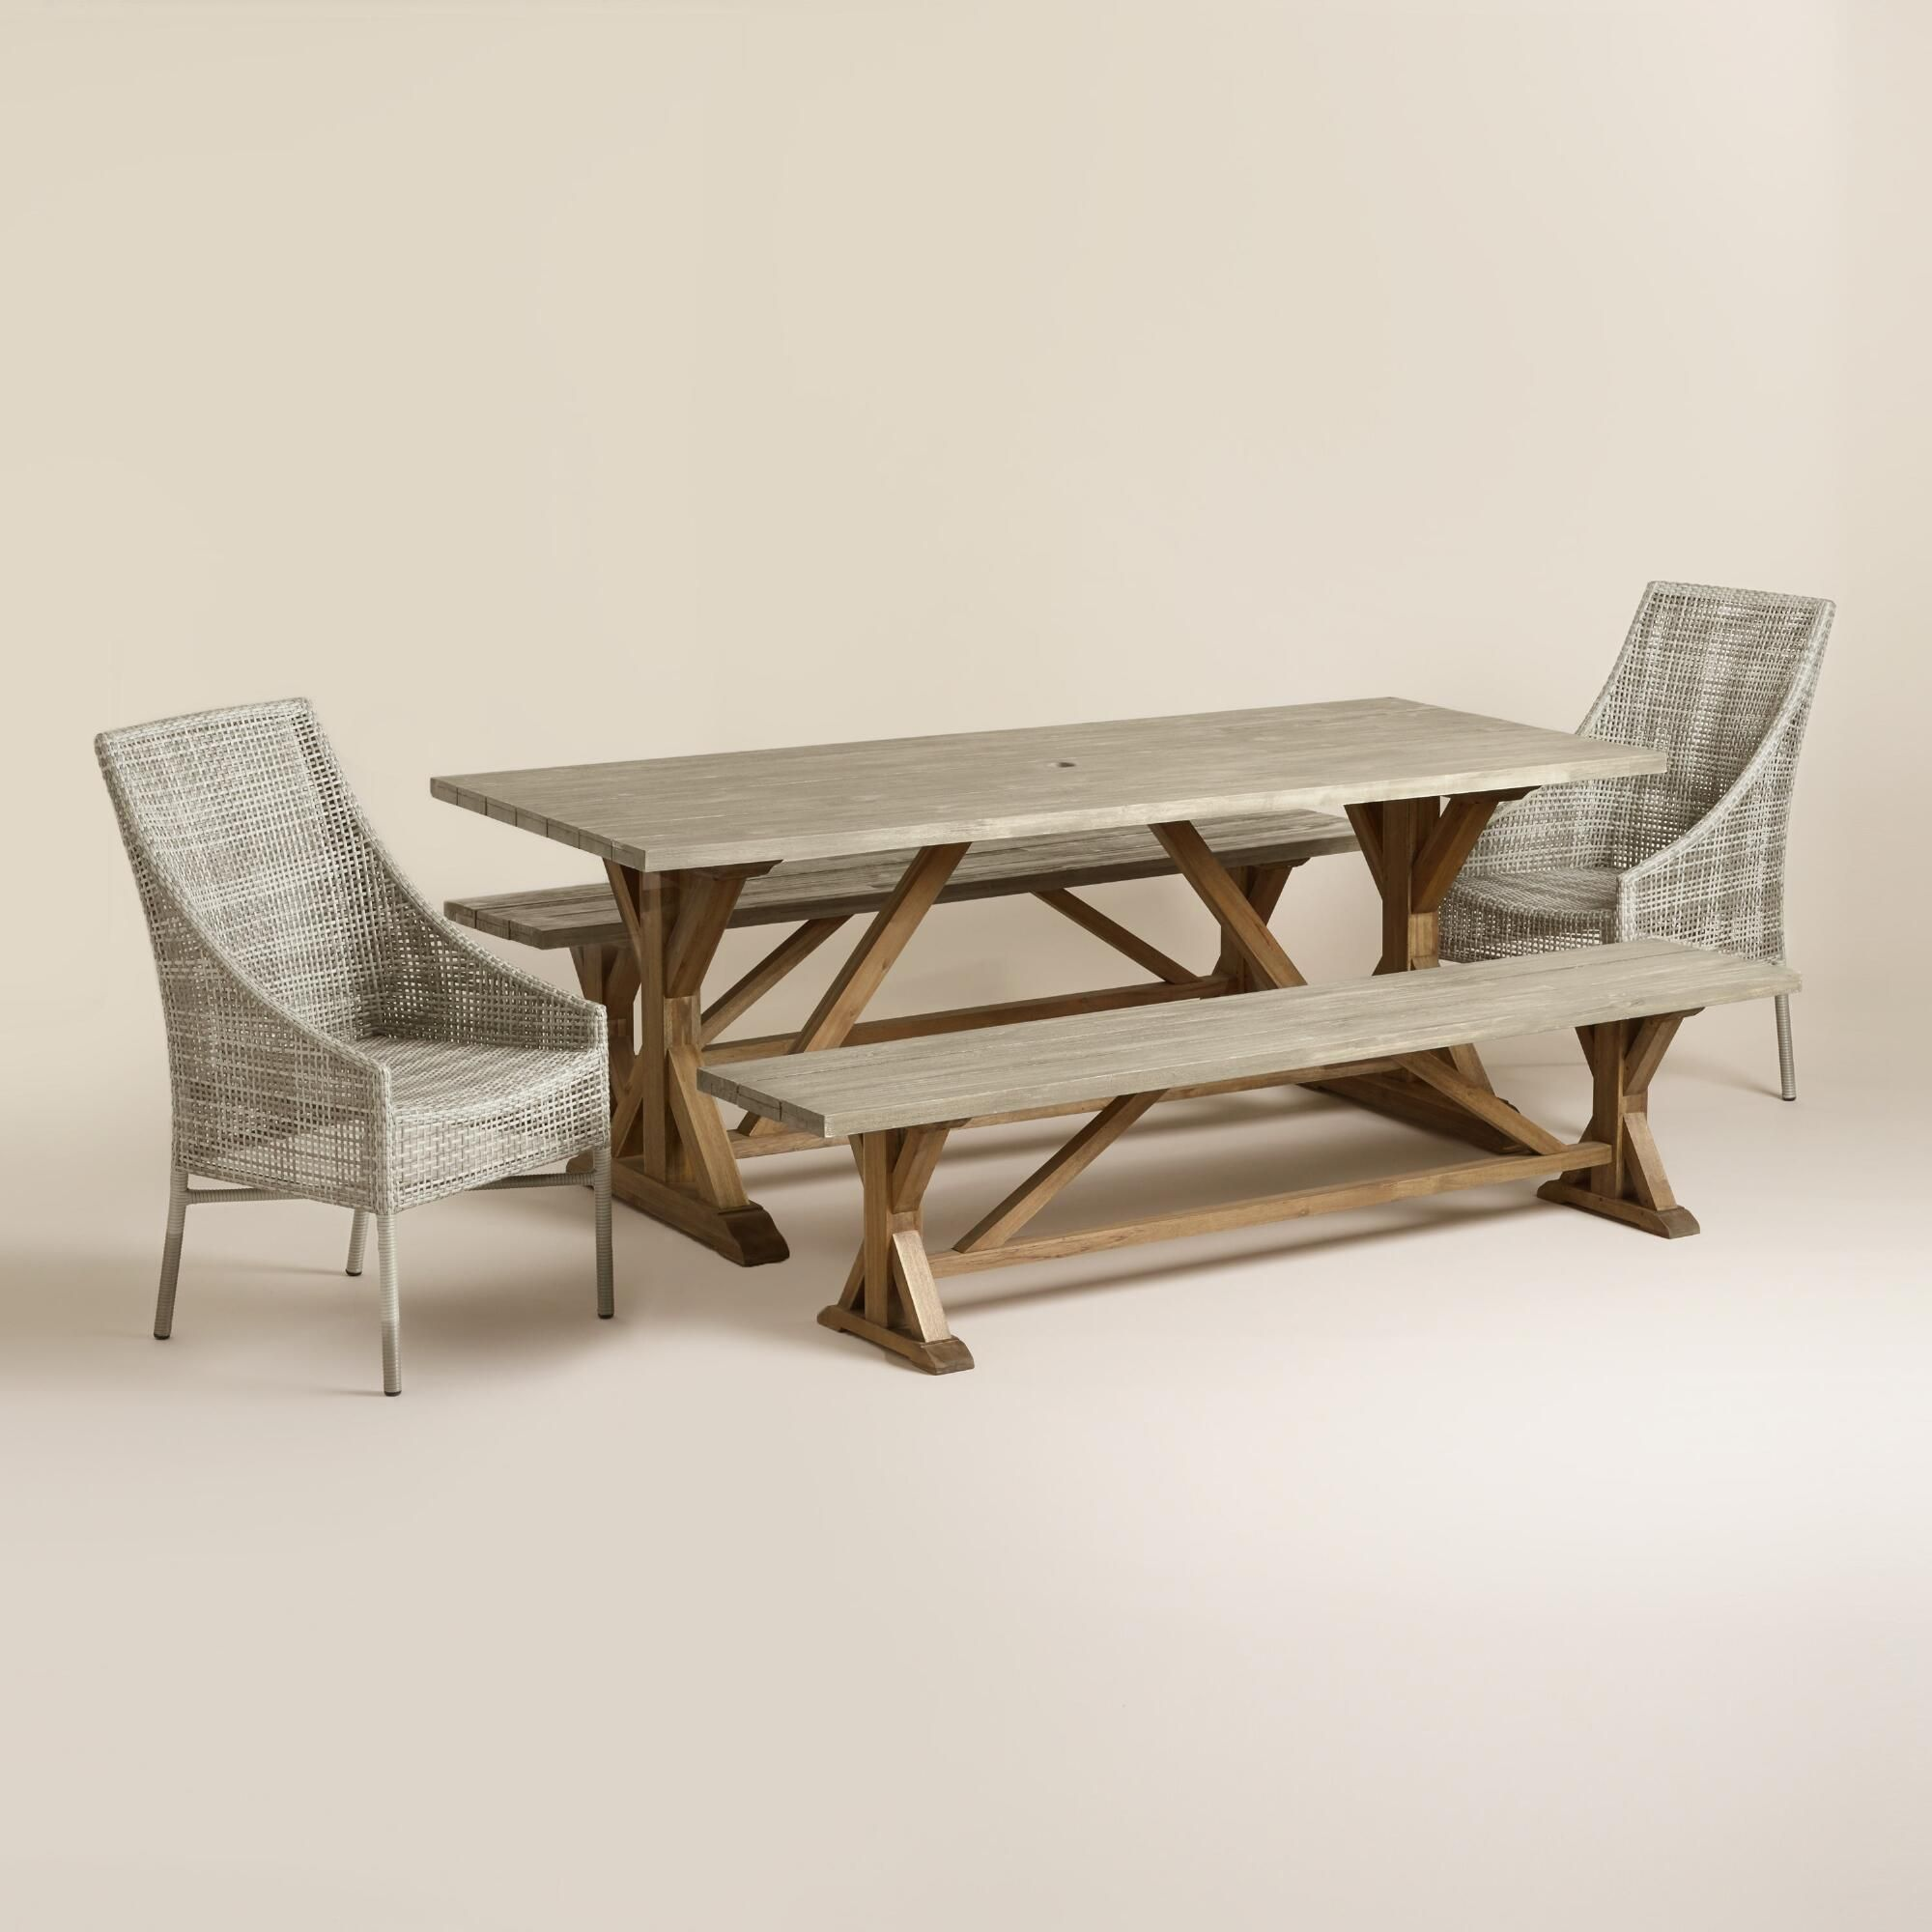 Explore Outdoor Dining Tables, Dining Bench, And More!